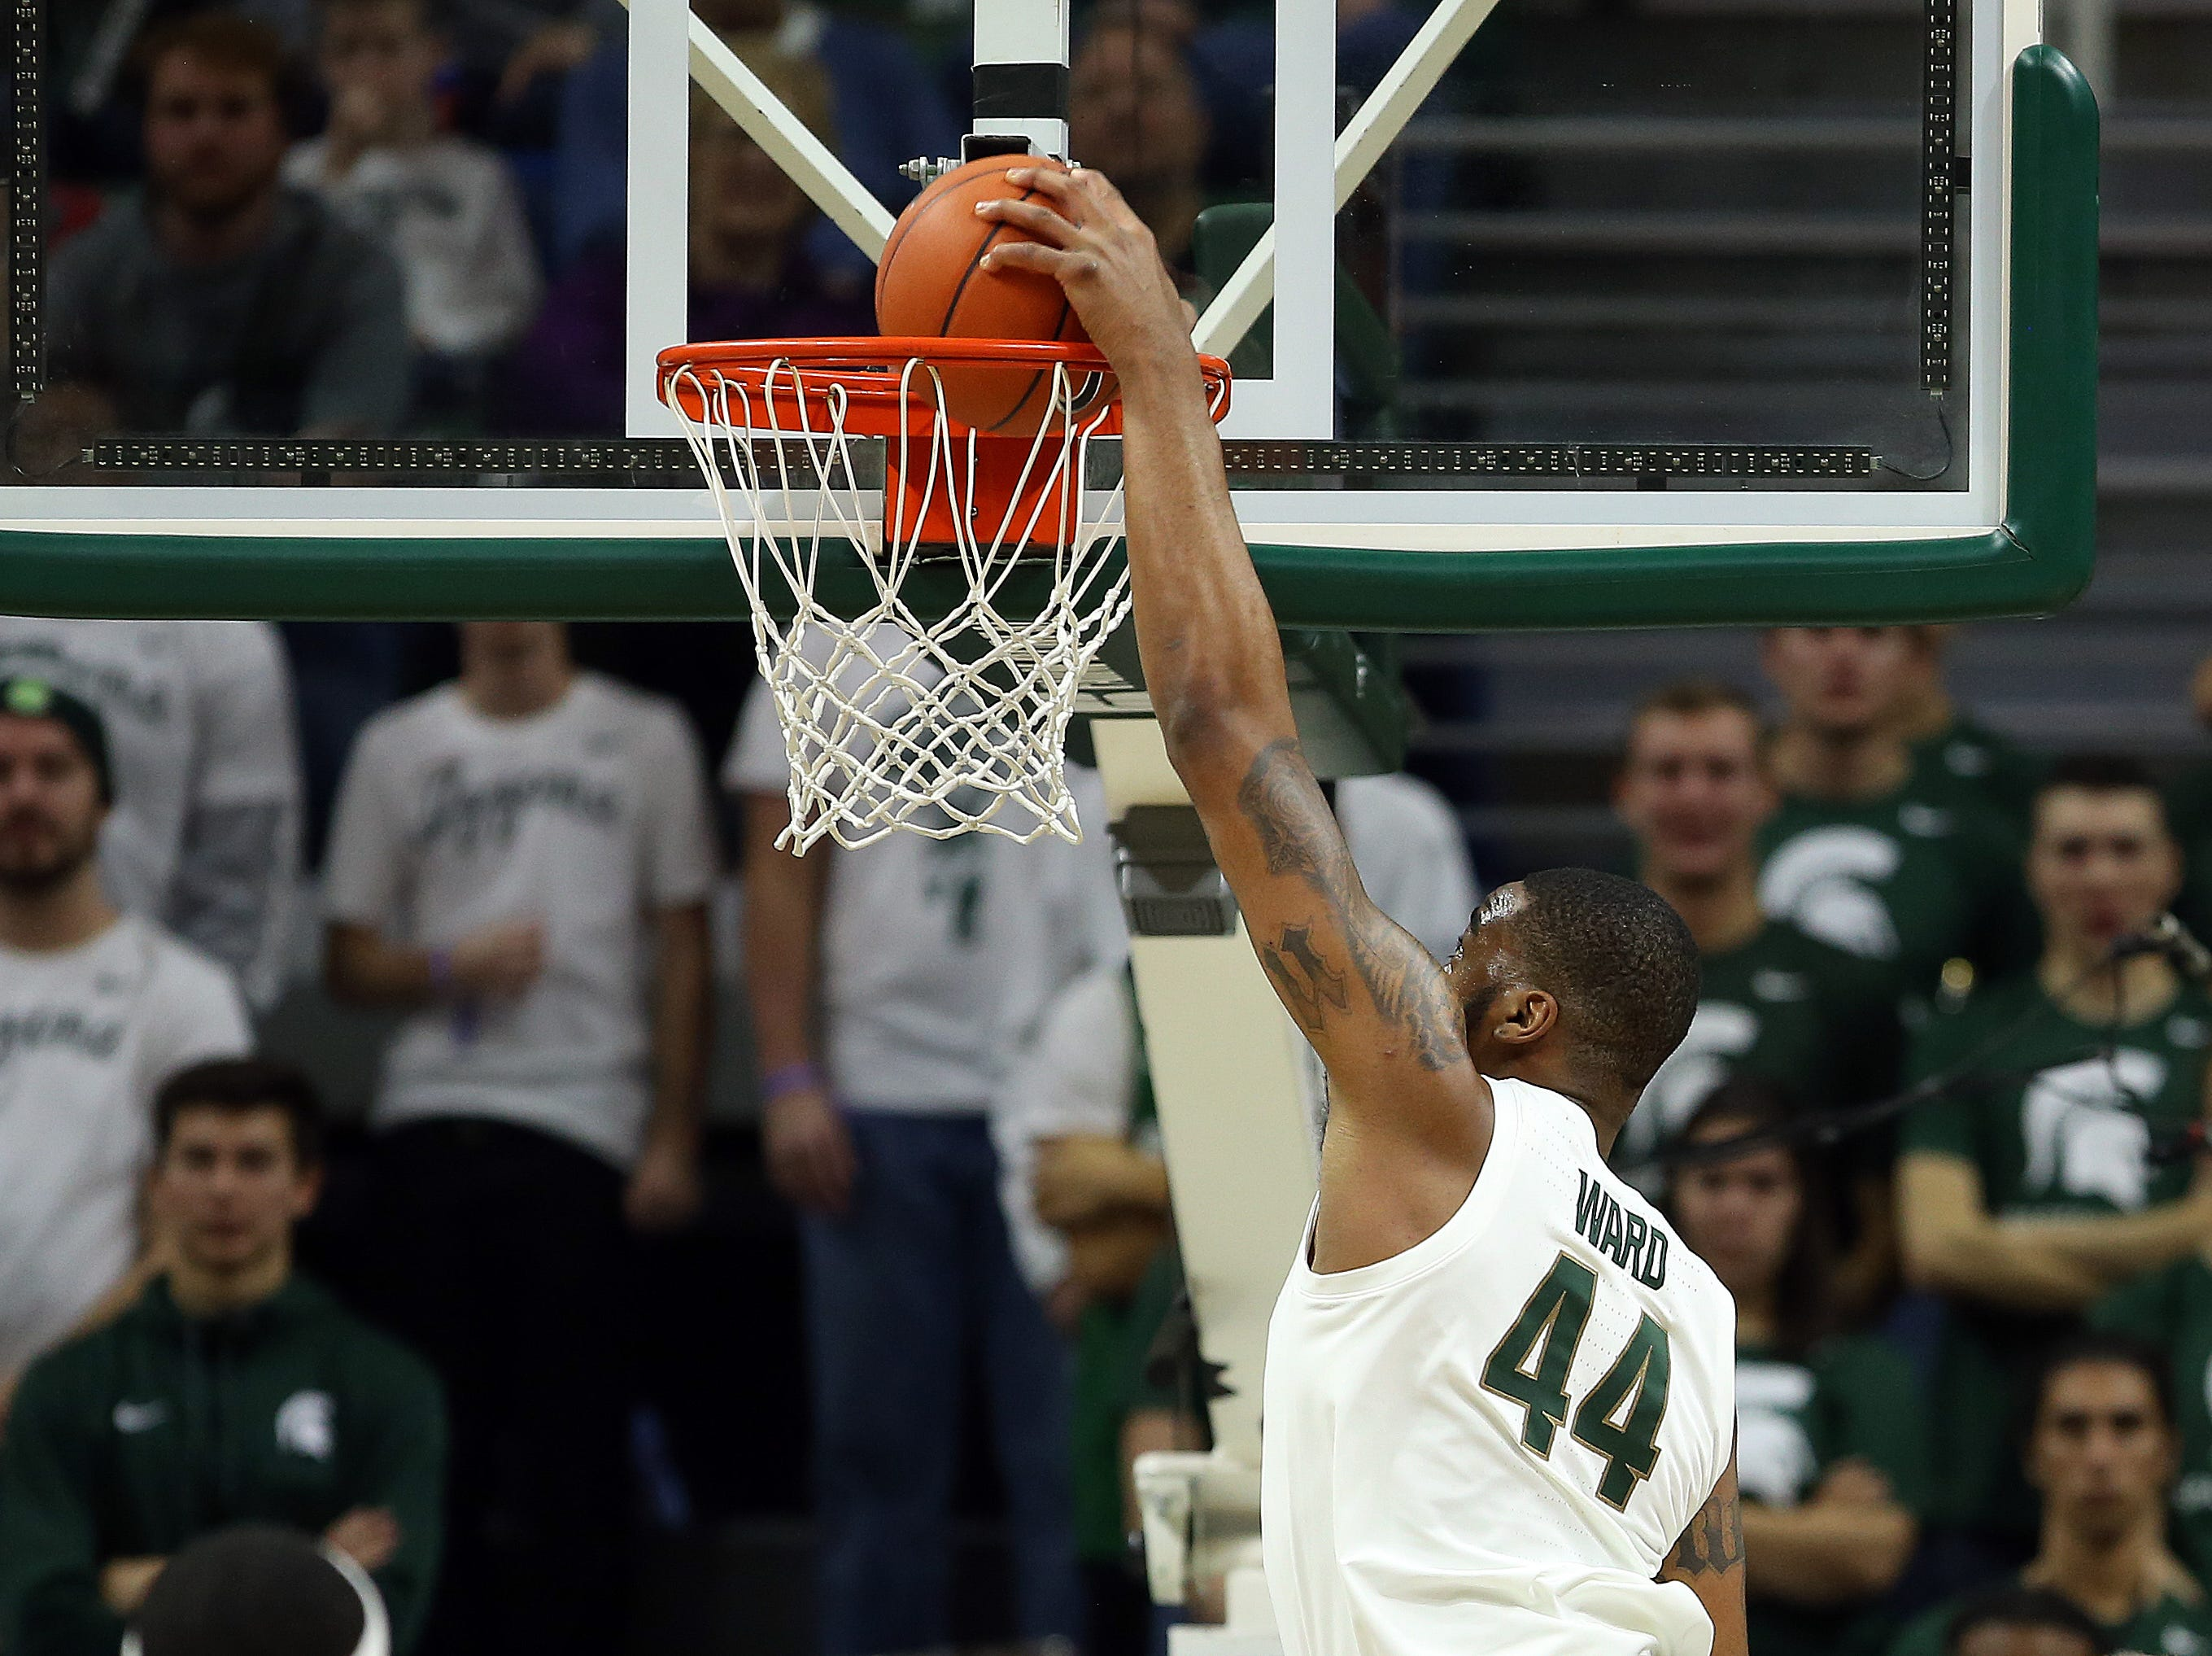 Nov 11, 2018; East Lansing, MI, USA; Michigan State Spartans forward Nick Ward (44) dunks the ball during the first half of a game against the Florida Gulf Coast Eagles at the Breslin Center. Mandatory Credit: Mike Carter-USA TODAY Sports